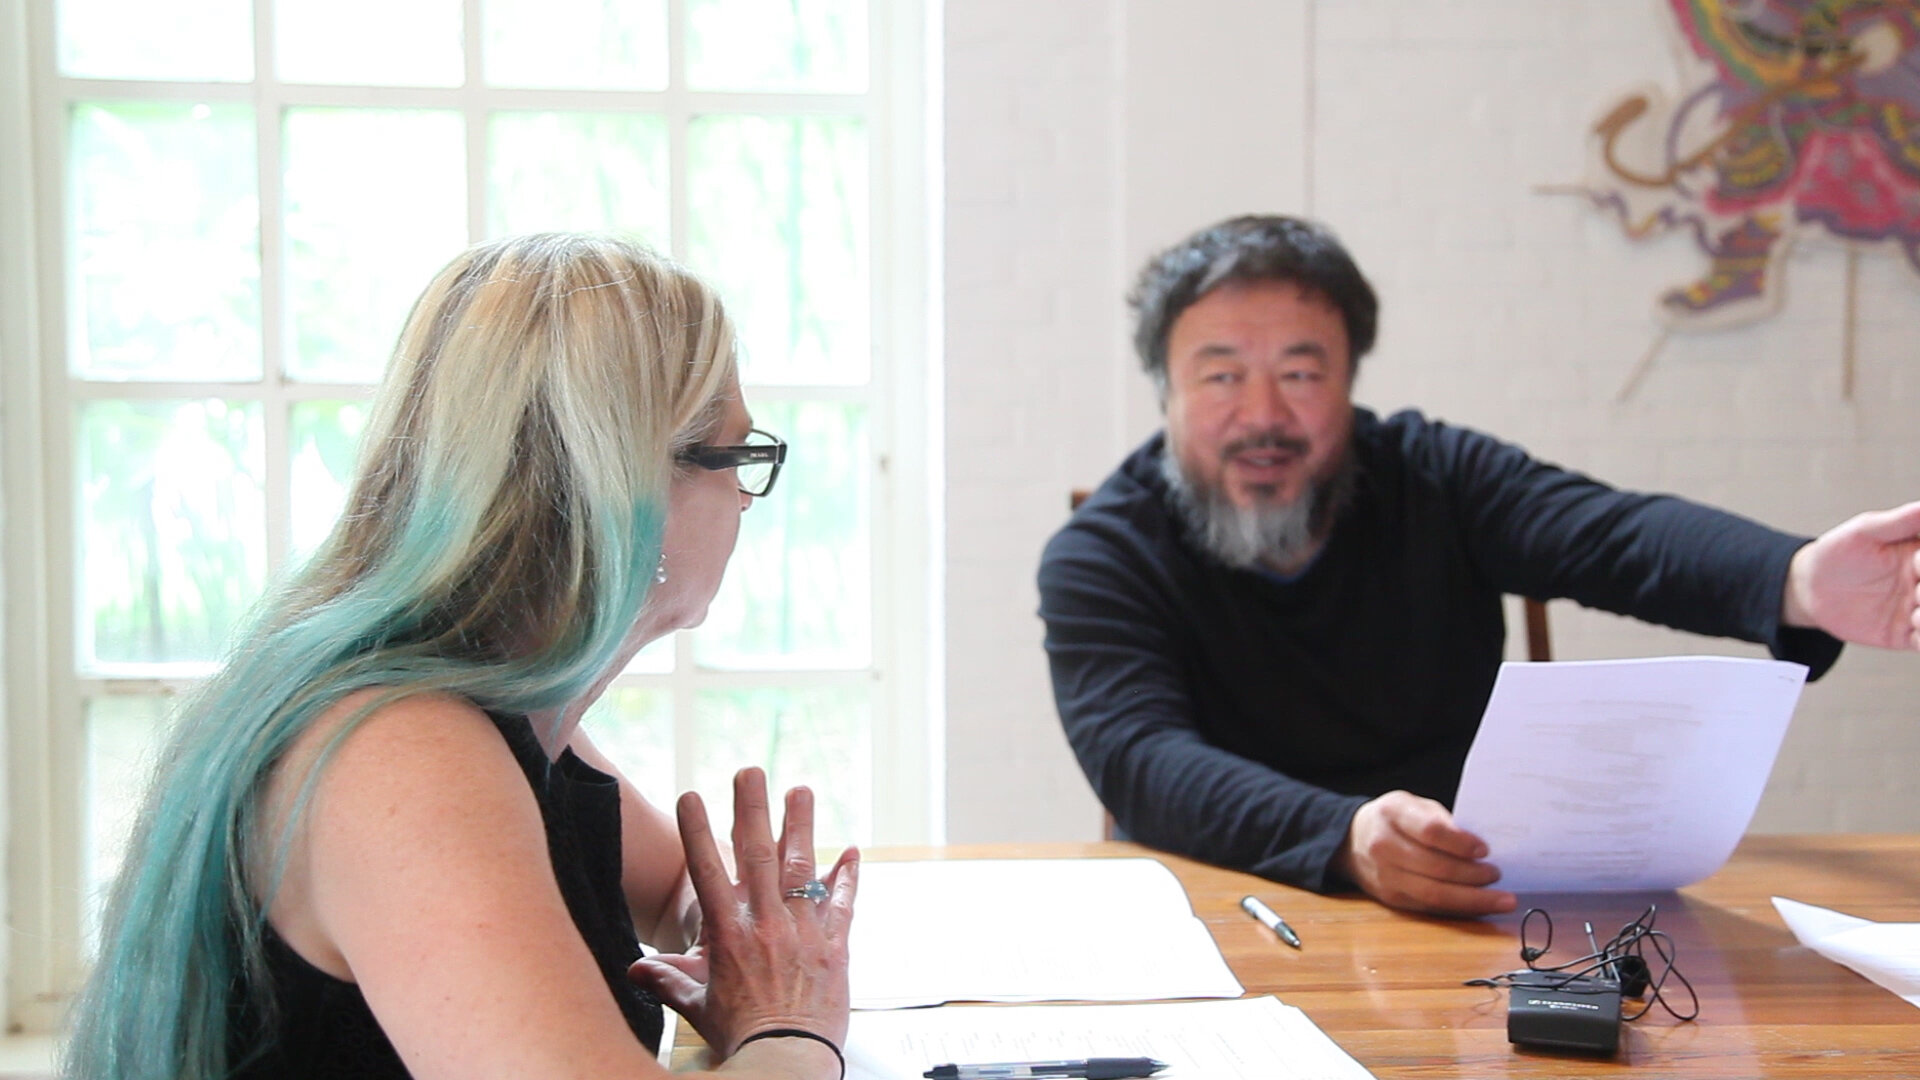 Ai Weiwei: Yours Truly_Cheryl Haines and Ai_image 5.jpg